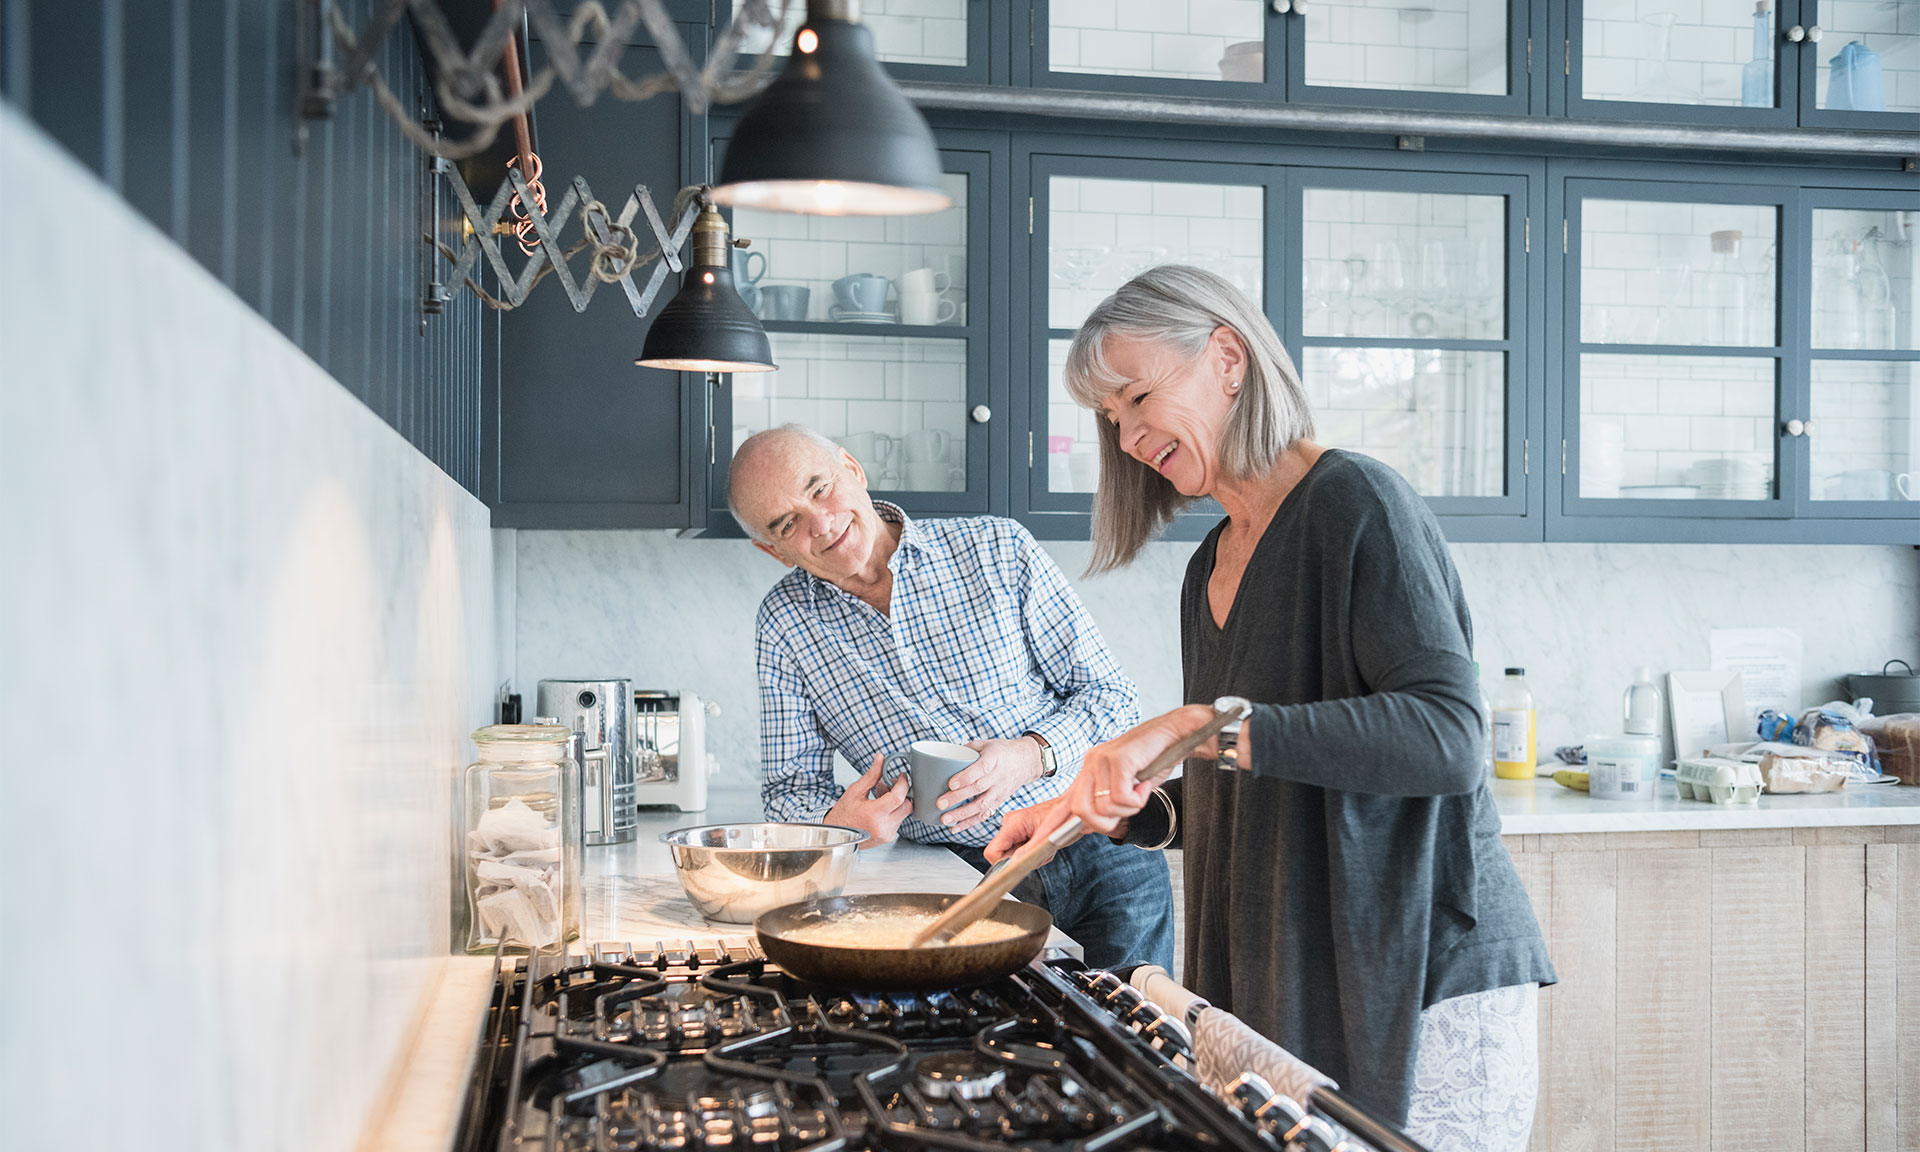 Couple cooking on a gas hob